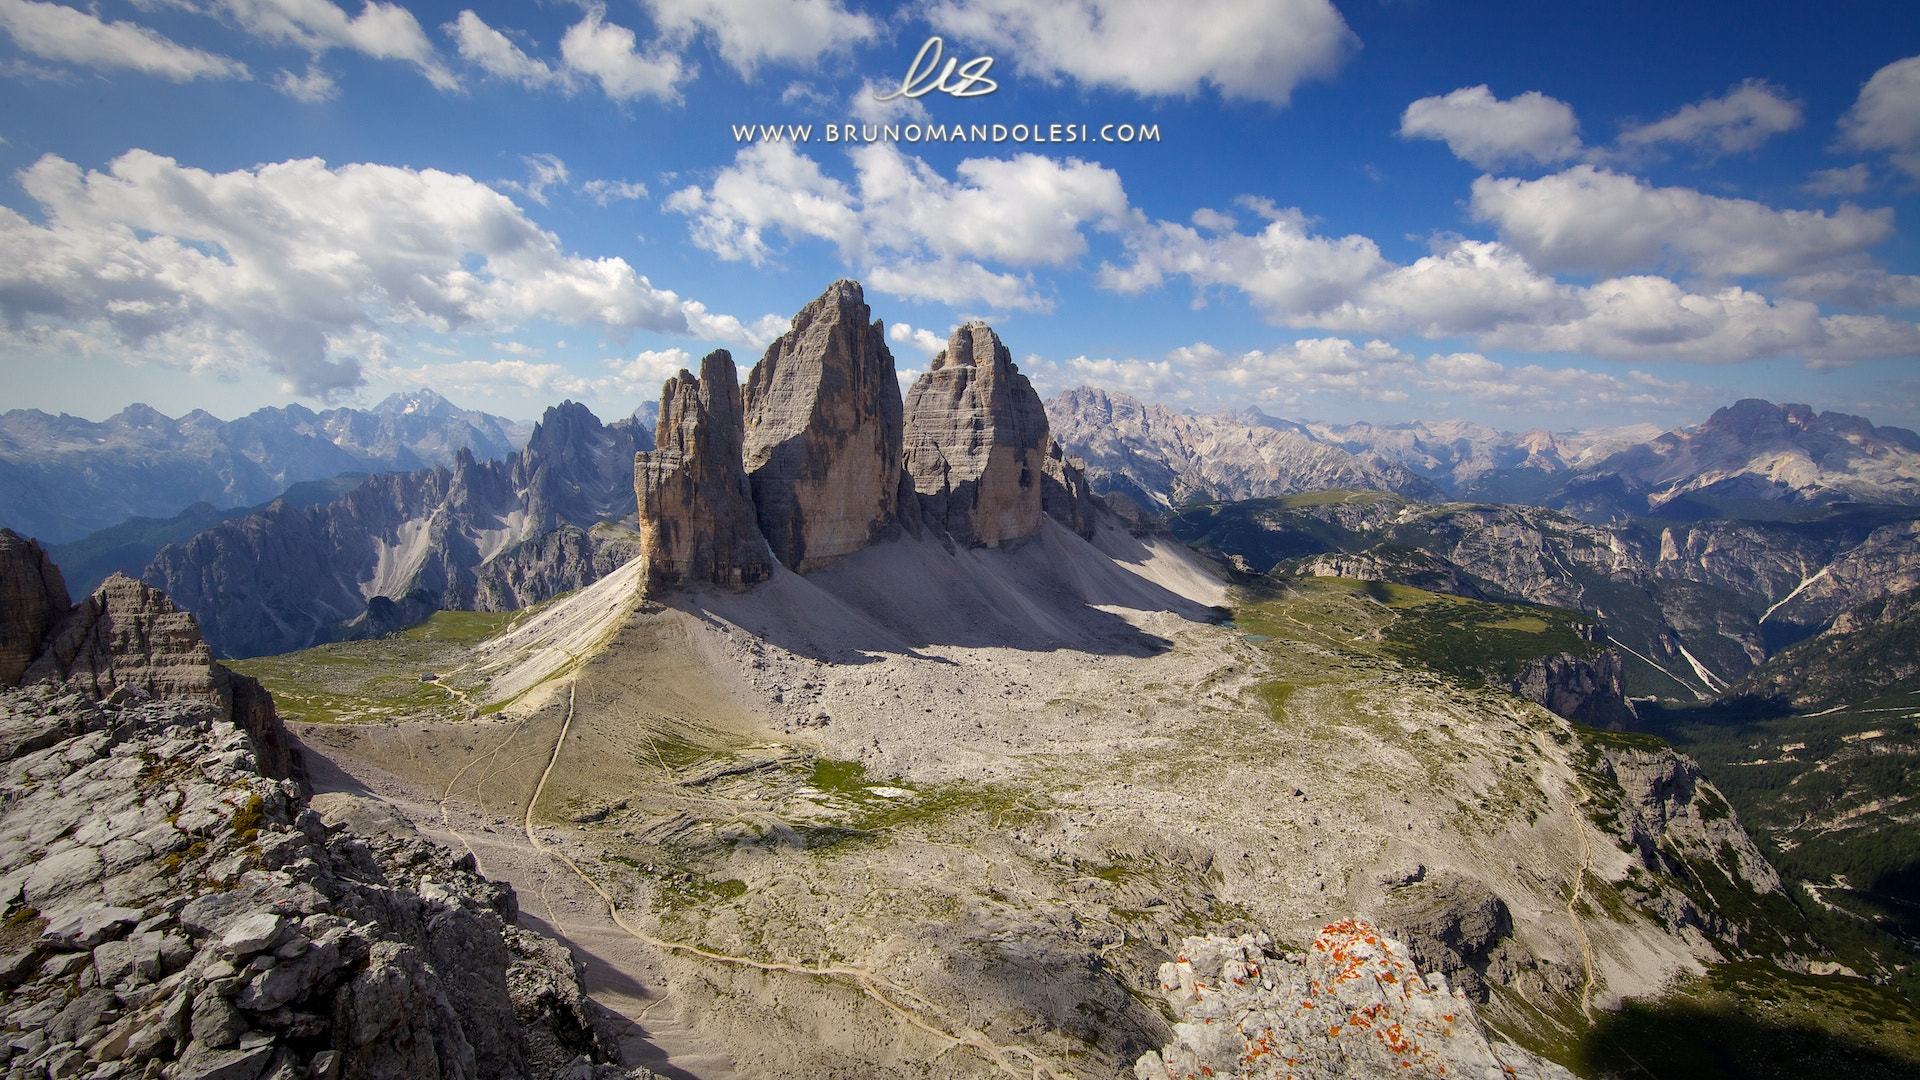 Photograph Tre Cime by bruno mandolesi on 500px